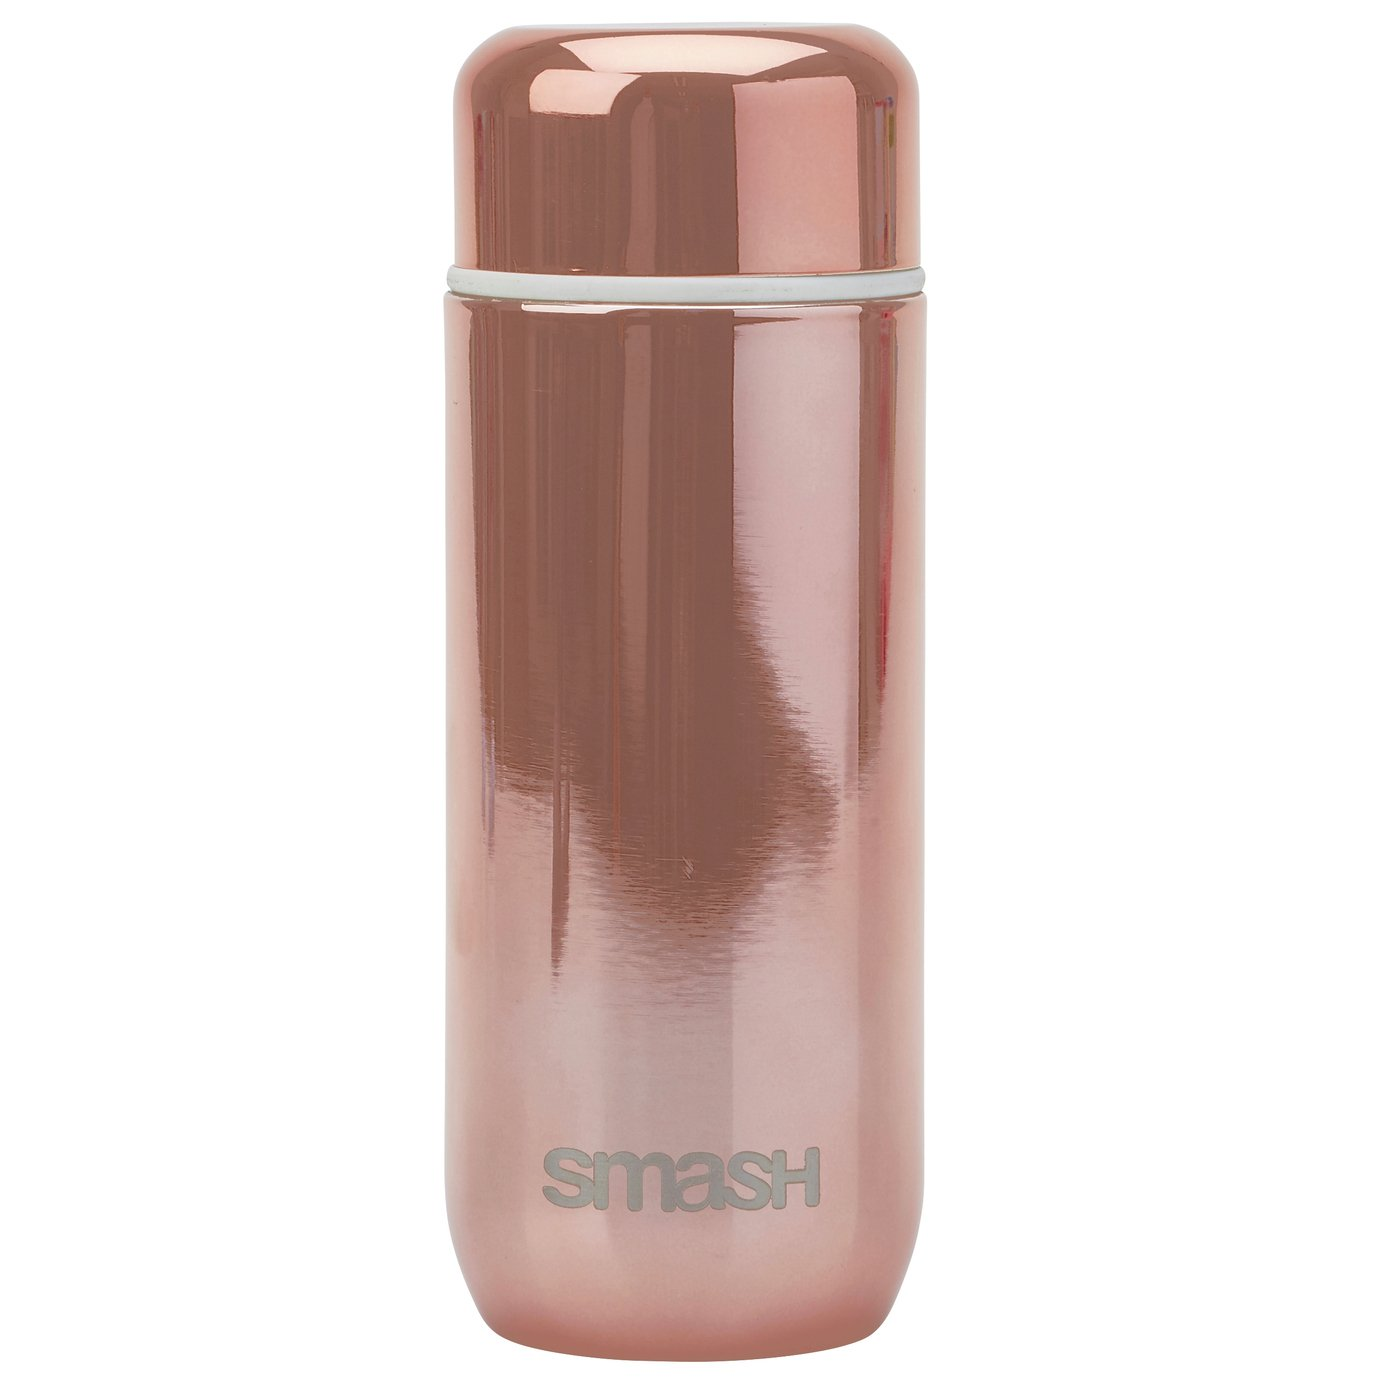 Rose Gold Stainless Steel Coffee Flask - 200ml